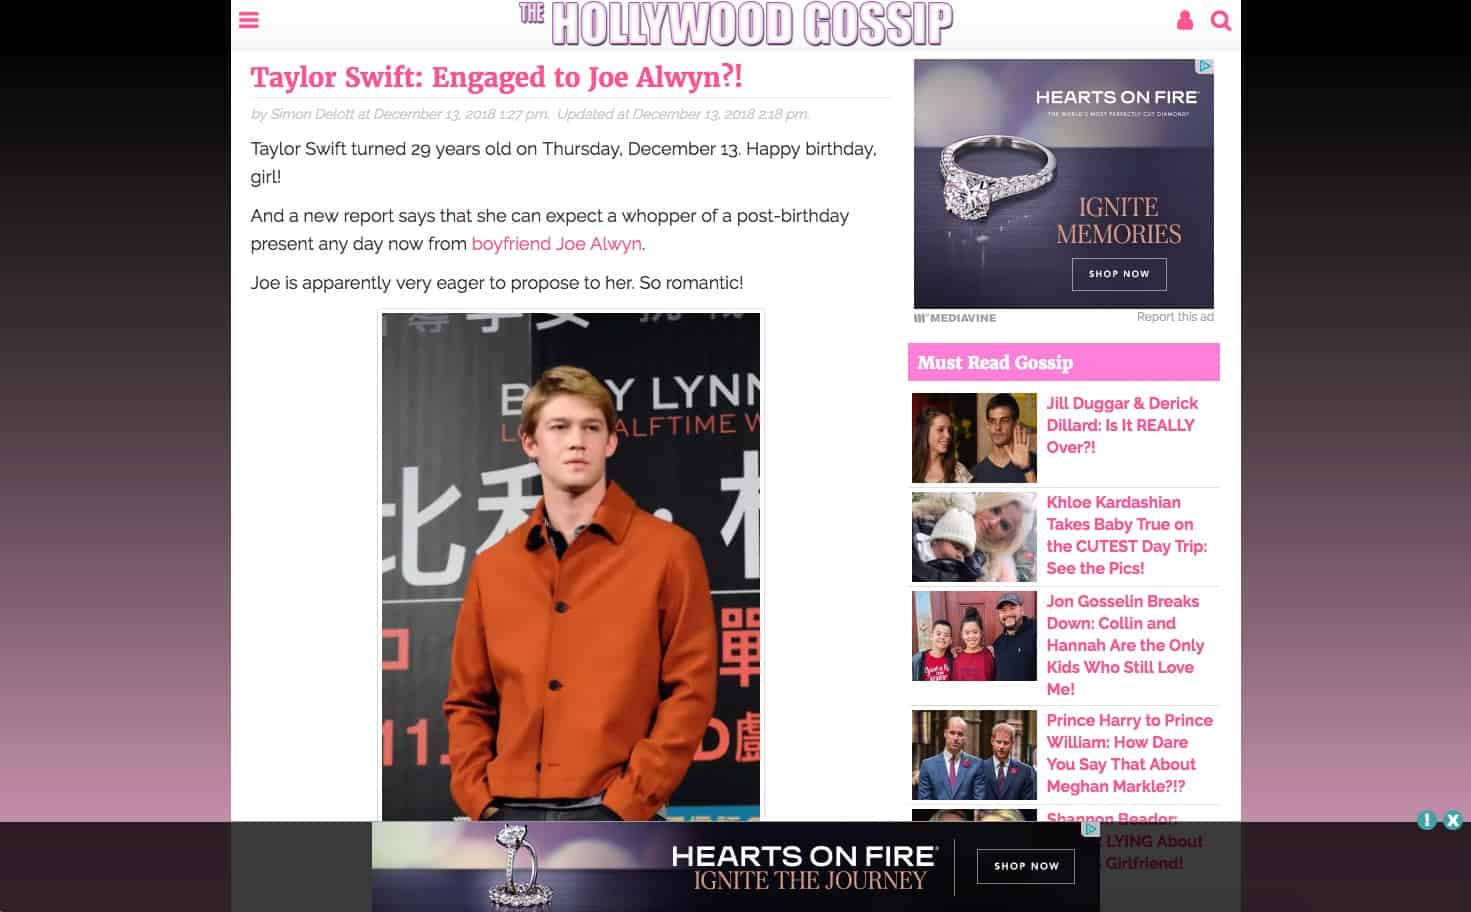 A screen capture of The Hollywood Gossip